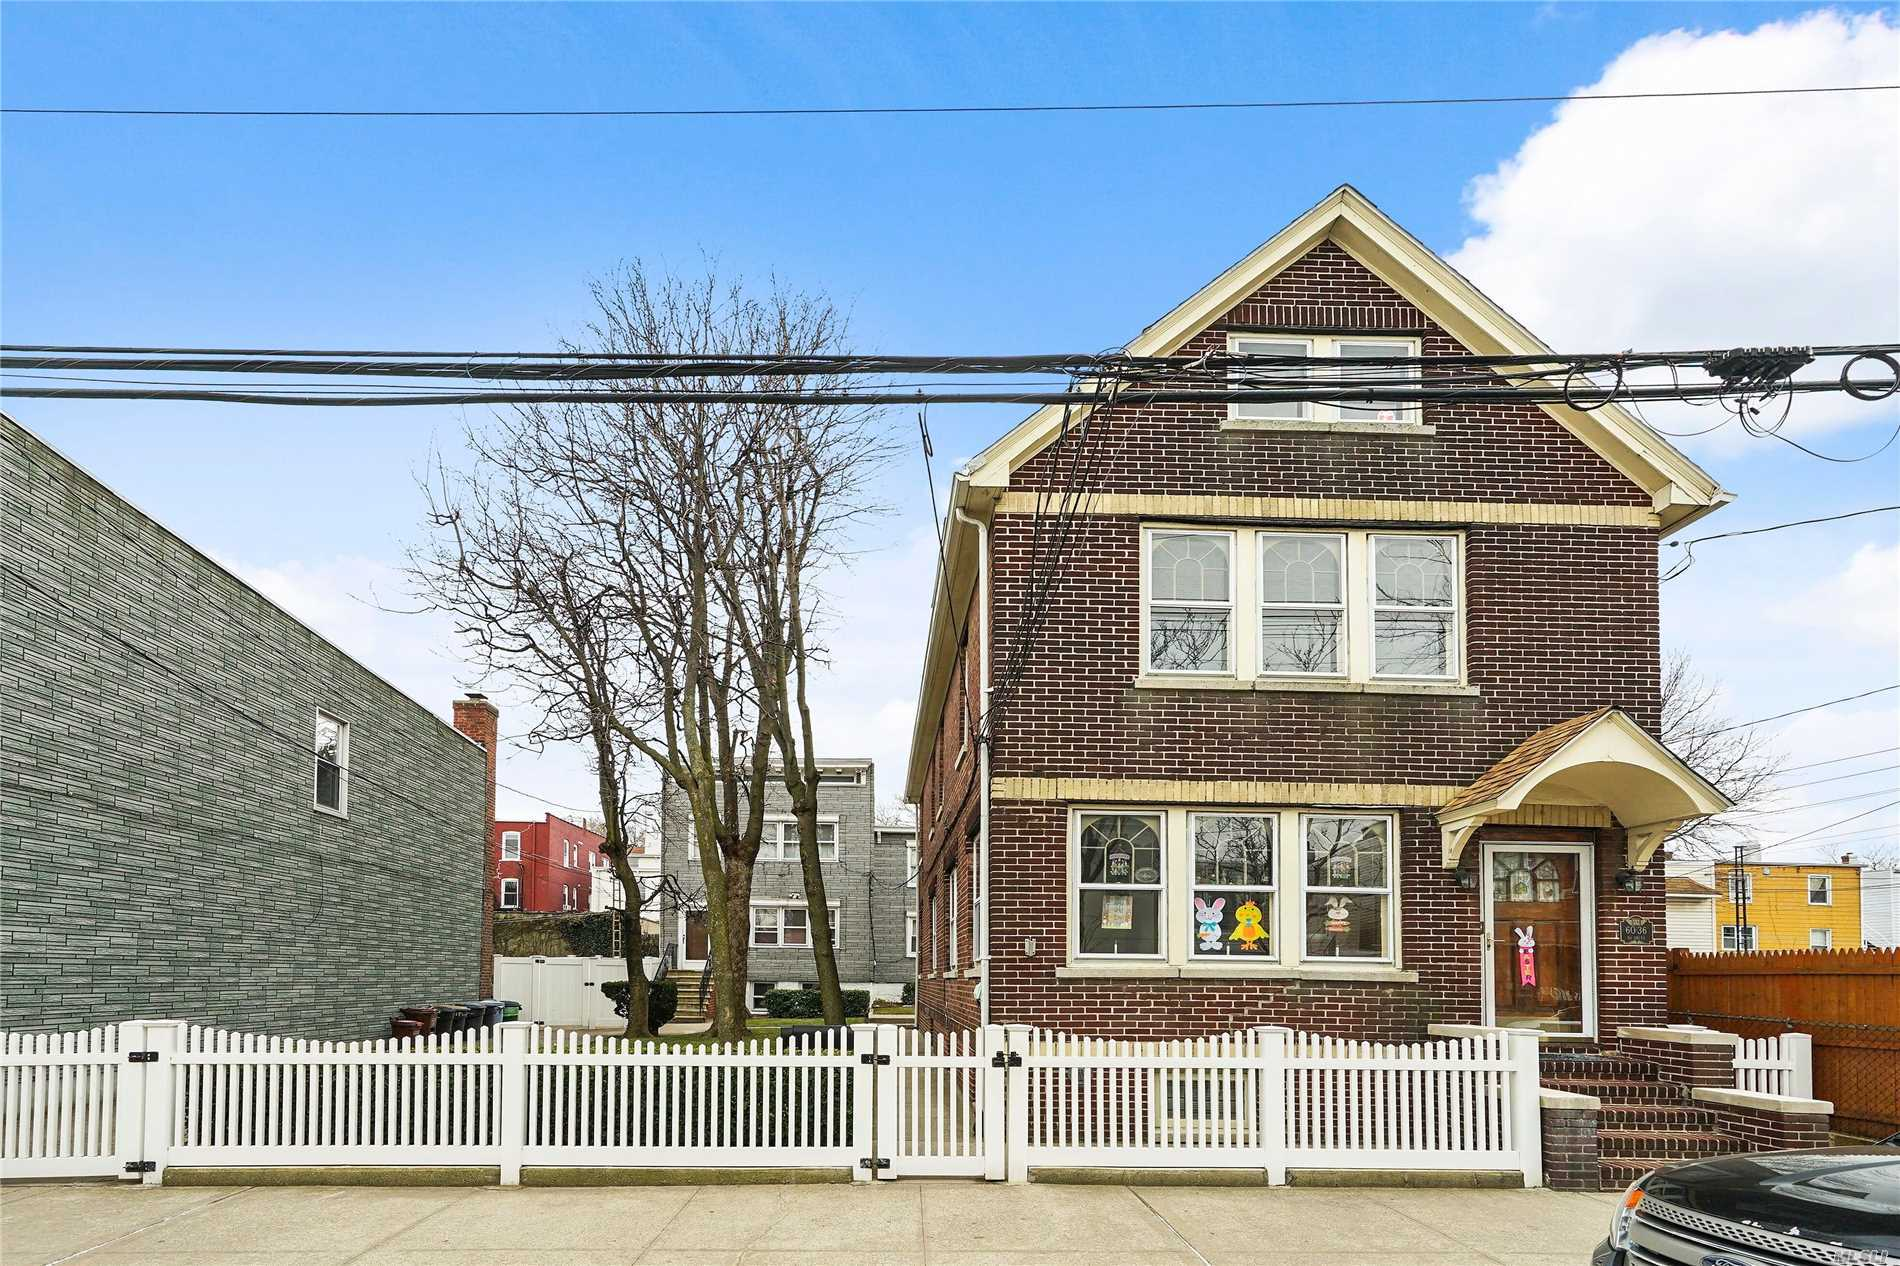 Investors Dream!! 3 two familiy homes on a 50x100 s/f lots. 60-36 56th Dr. 1 Detached Brick 2 family in front, 2 frame 2 families in back. 6038 56th Dr -2 family Frame, Bldg size is approx. 18 x 32, yearly taxes are $3, 747. 6034 56th Dr. -2 Family Frame,  Bldg size: approx. 22 x 29 yeary taxes $5, 704 See attached survey and set up sheet with breakdown and info for each home.